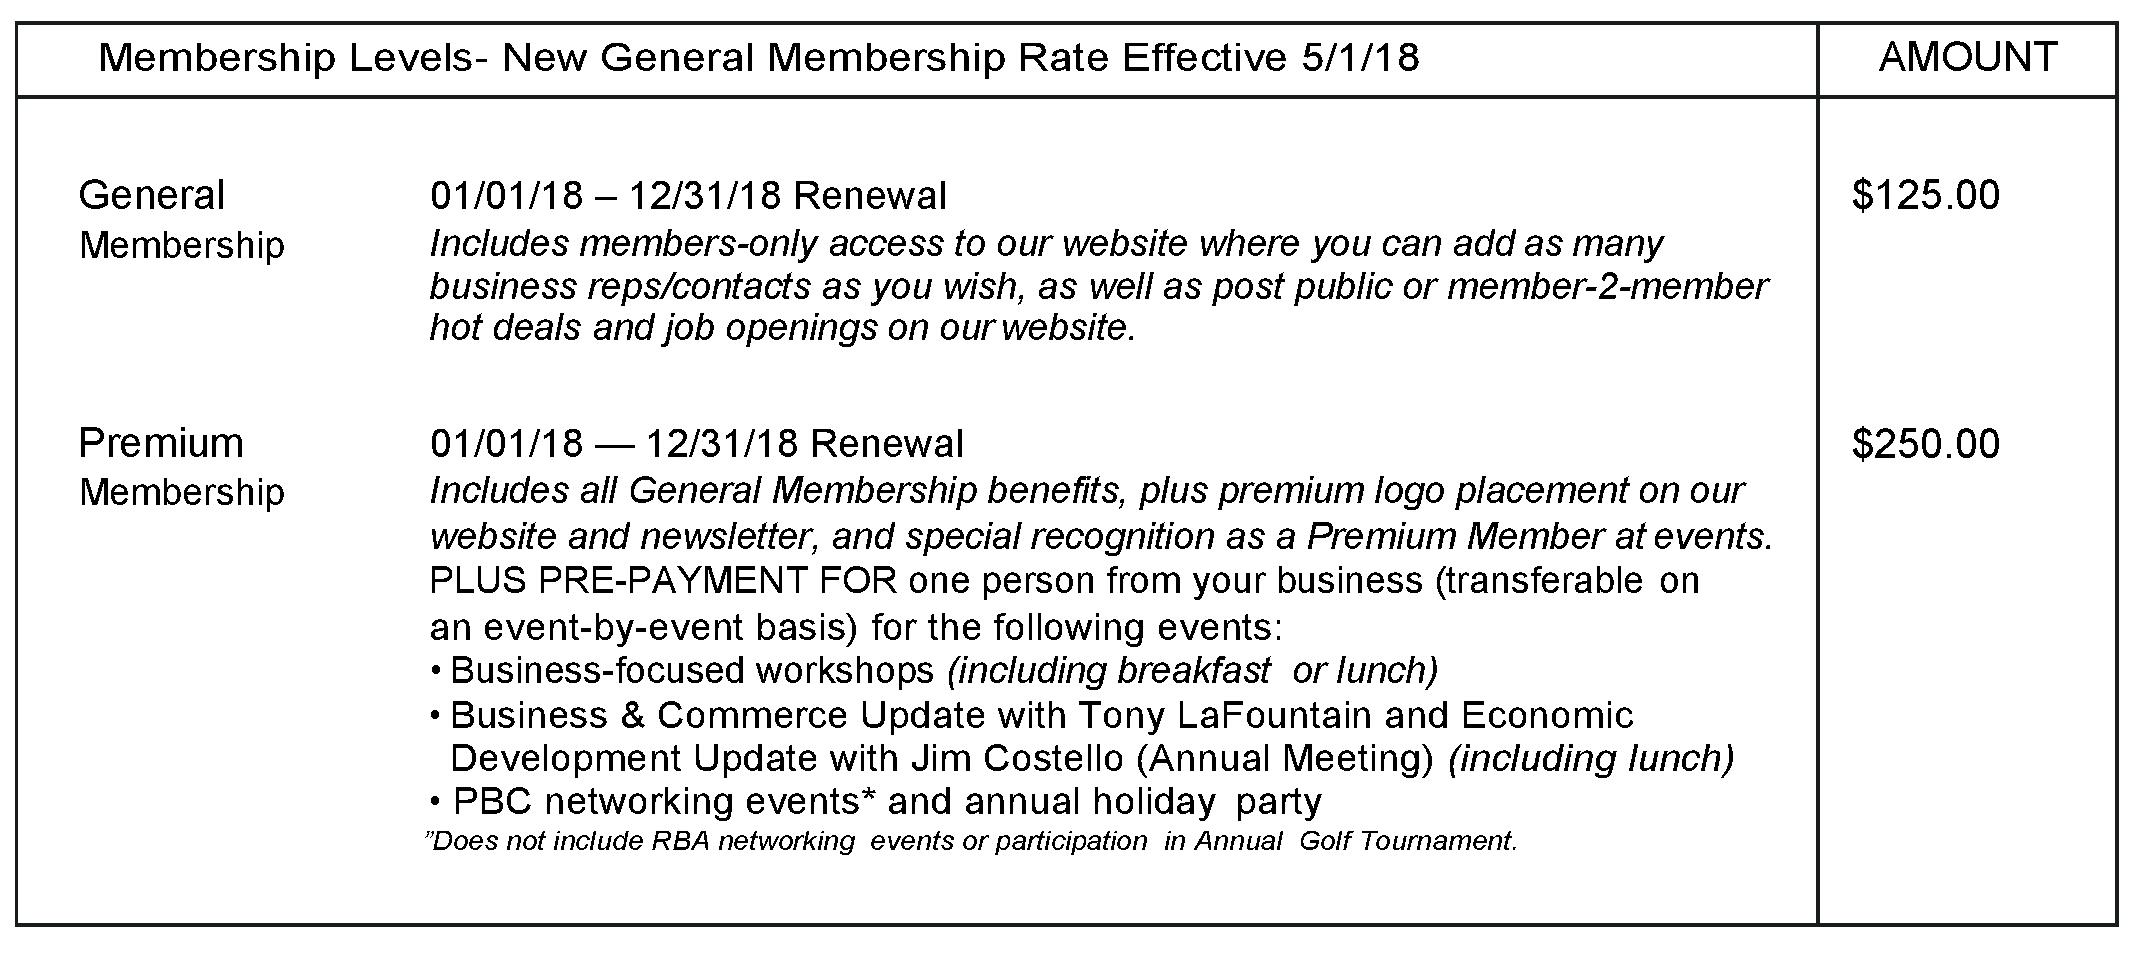 Renewal Rates Effective 5-1-2018